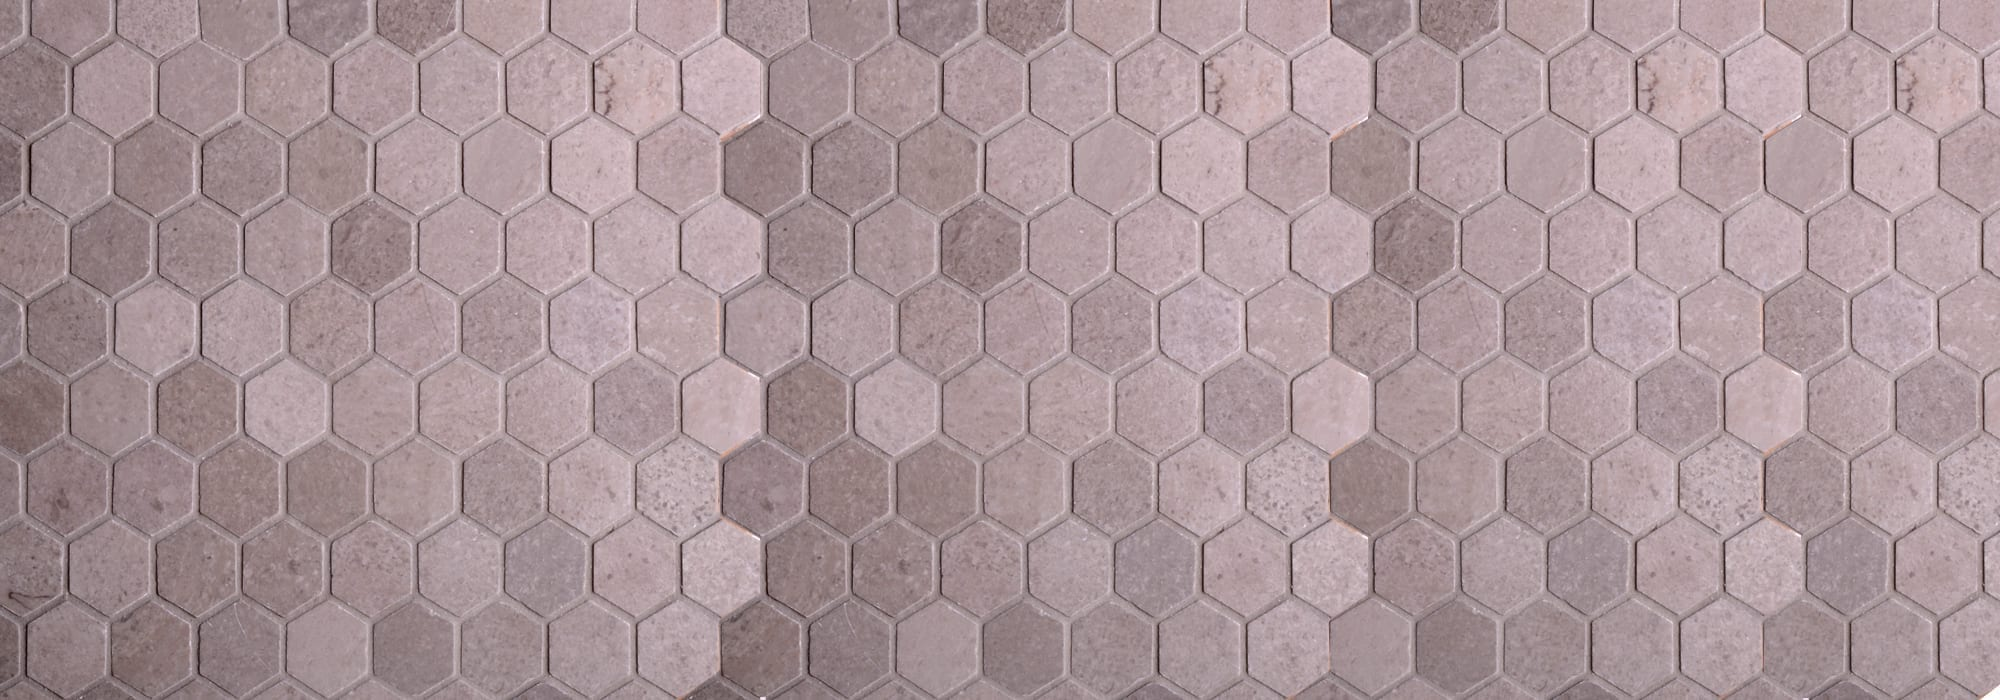 Shai Gray Hexagon Polished Mosaic by Milstone